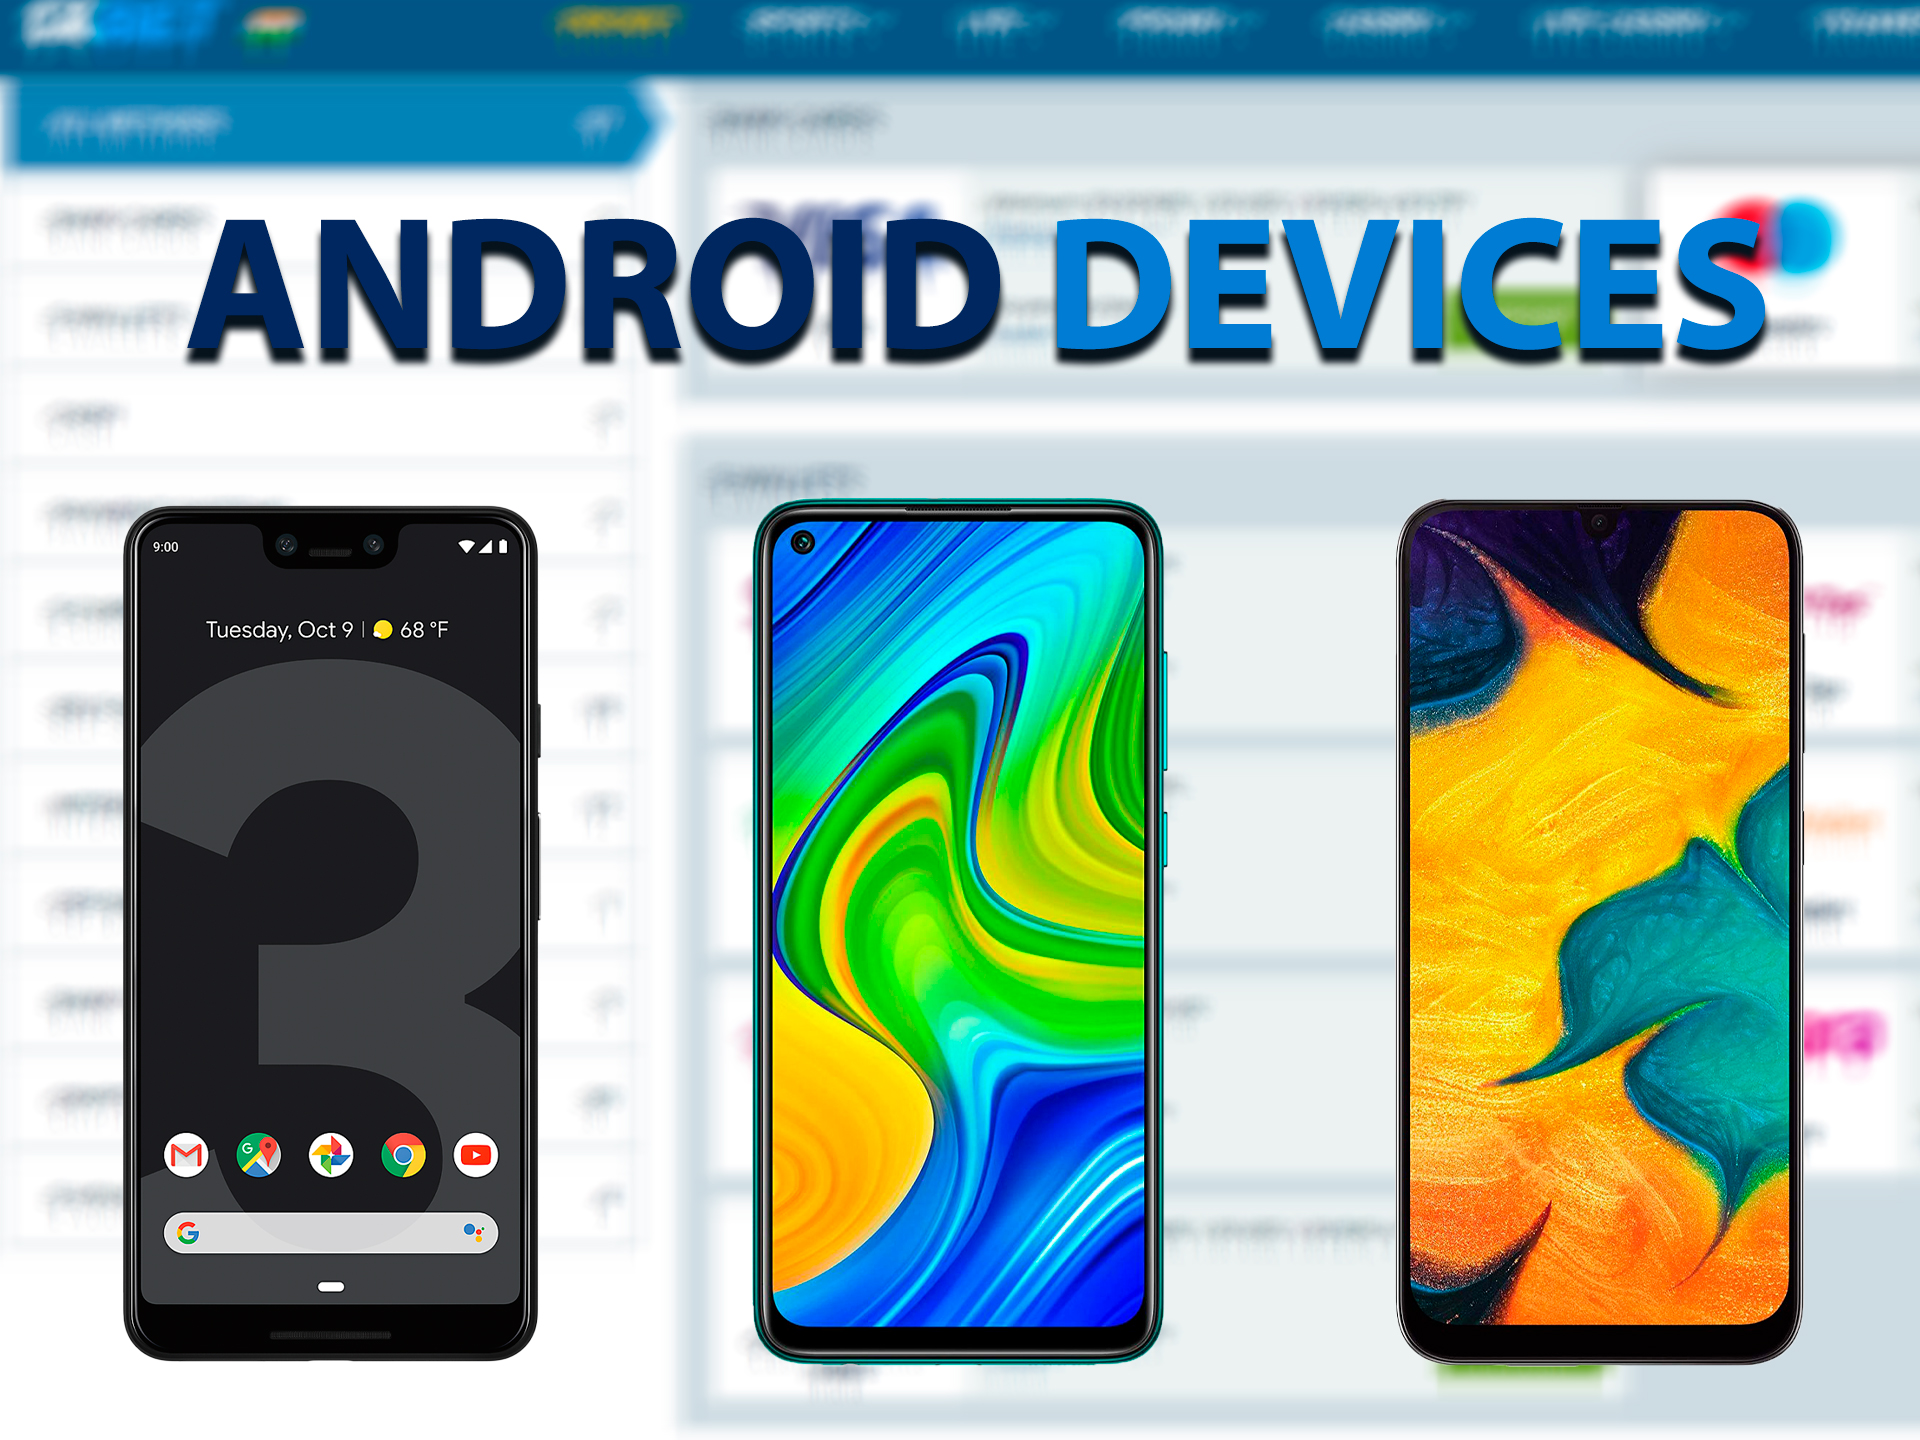 List of Android devices for betting on sports through the mobile app 1xBet India.